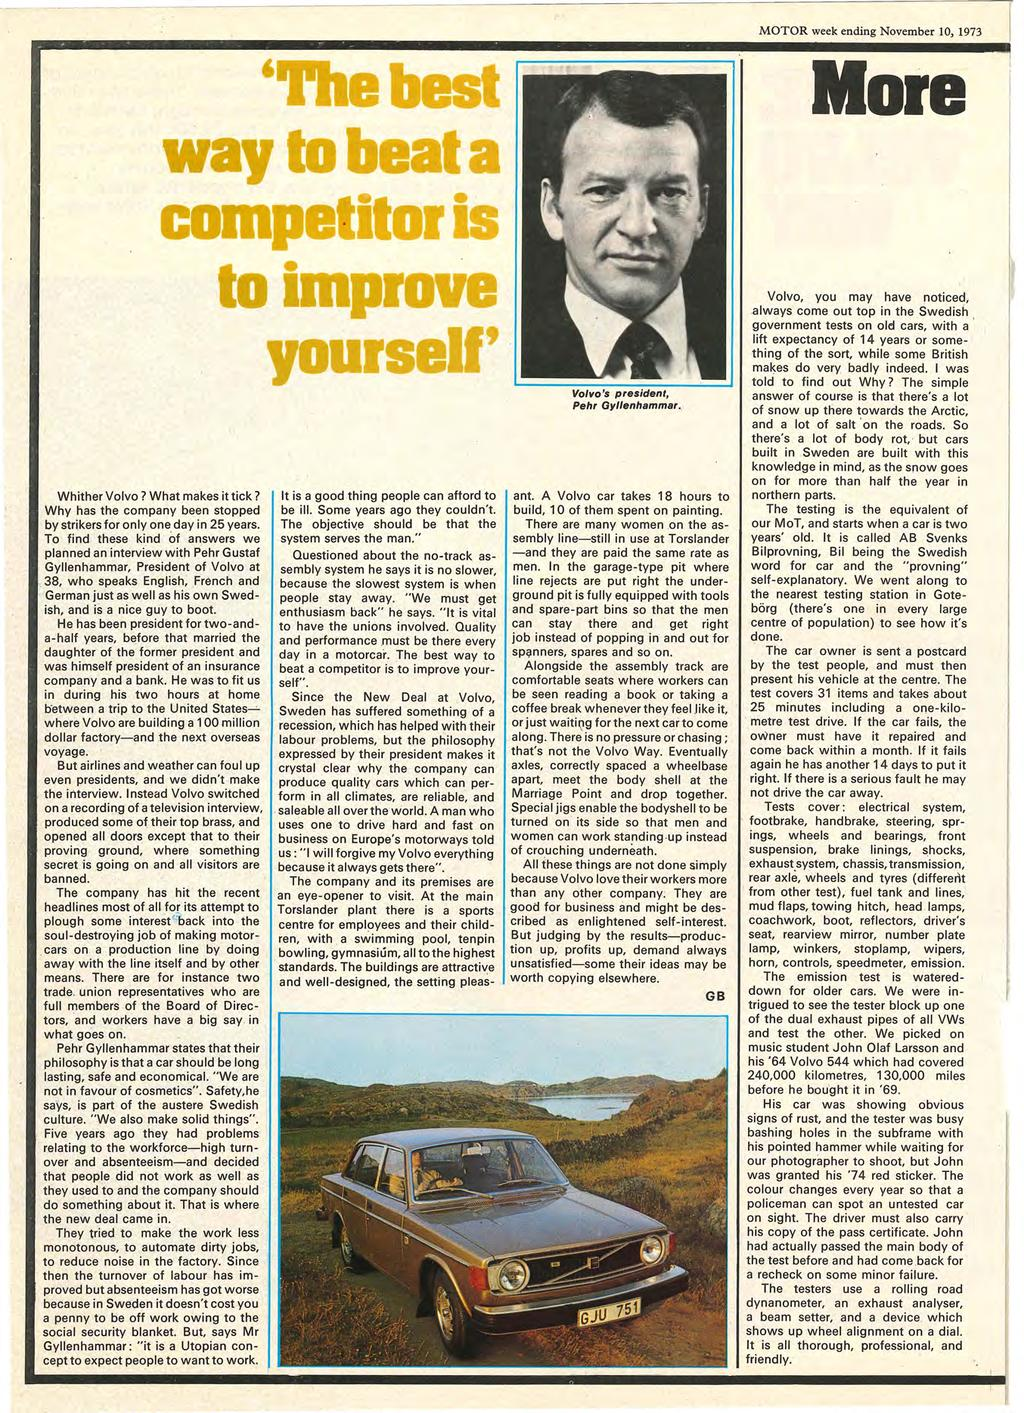 MOTOR week ending November 10, 1973 Whither Volvo? What makes it tick? Why has the company been stopped by stri.kers for only one day in 25 years.